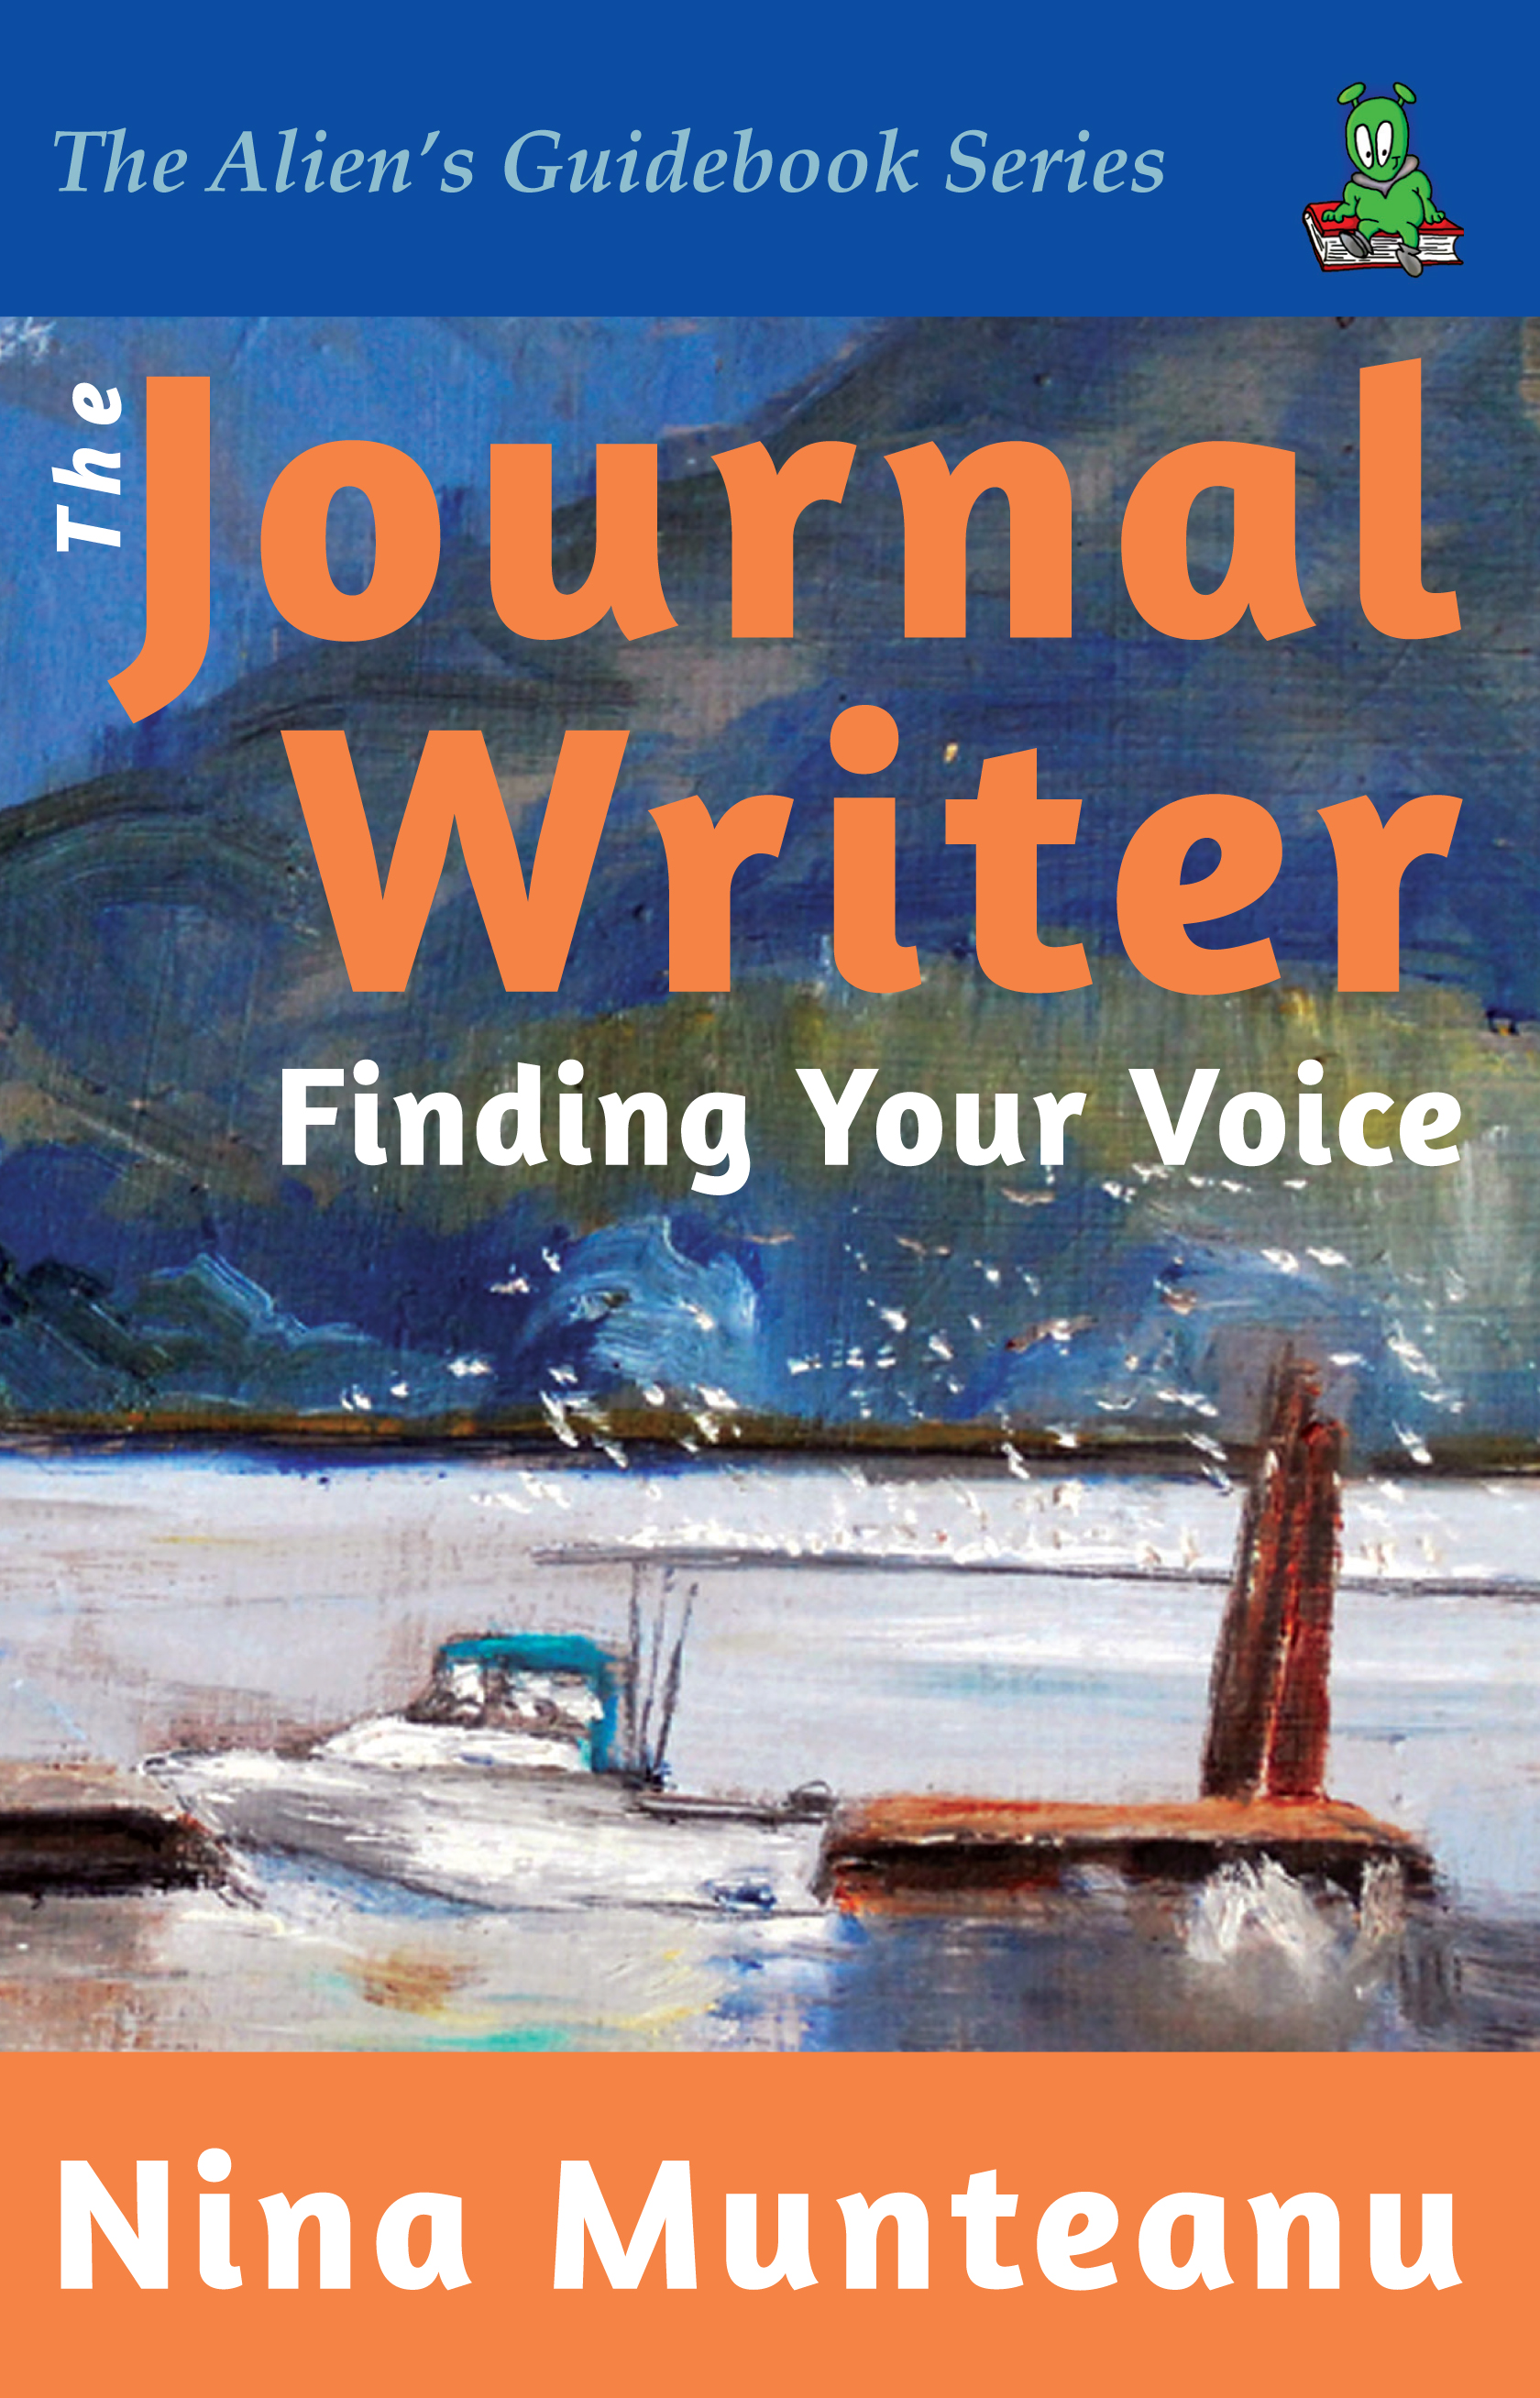 JournalWritert FrontCover copy 2